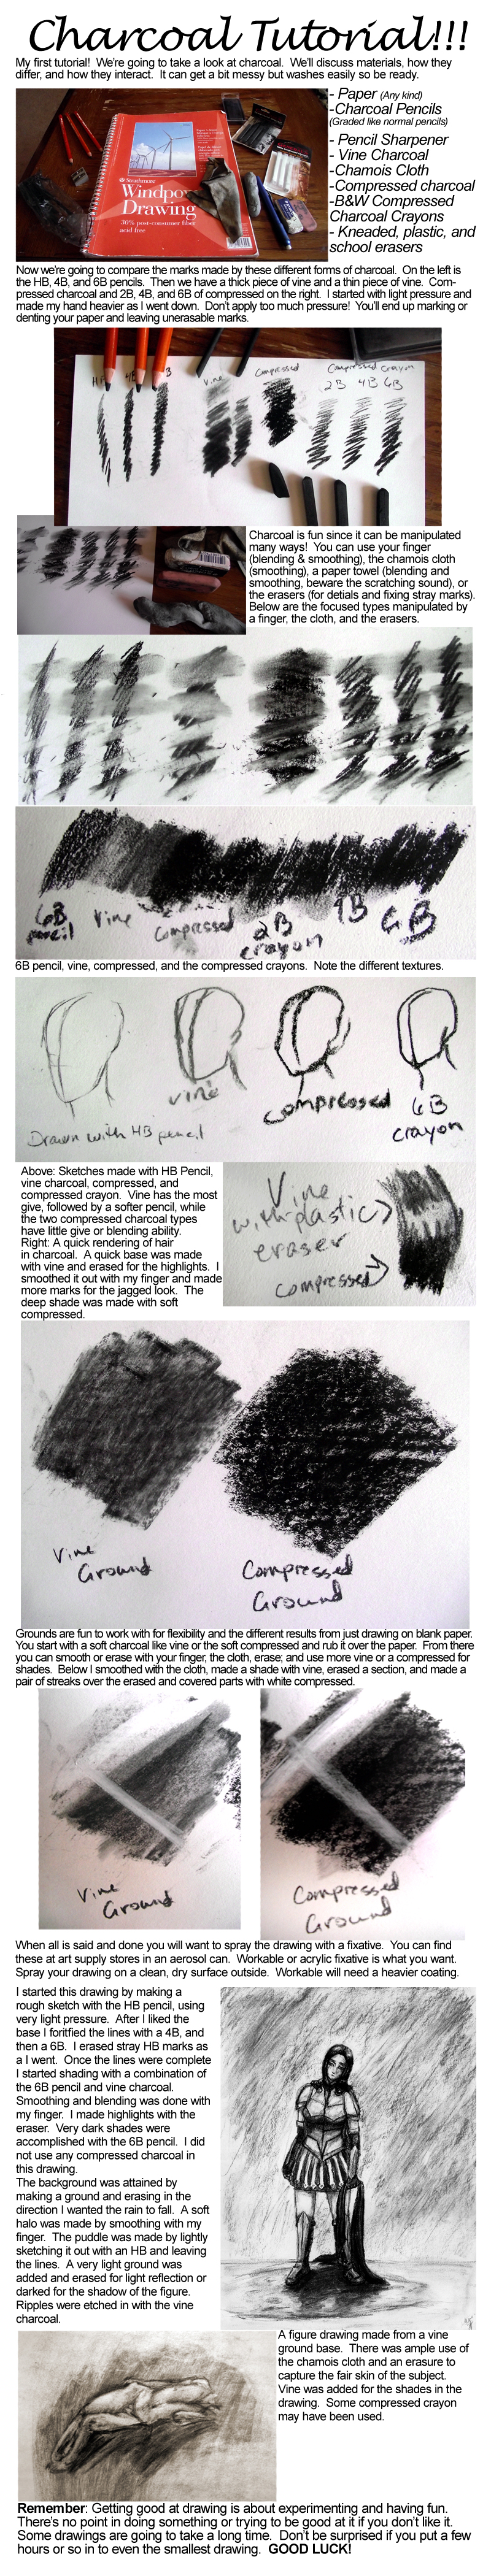 Charcoal Tutorial- My first one by a0ka0neArt